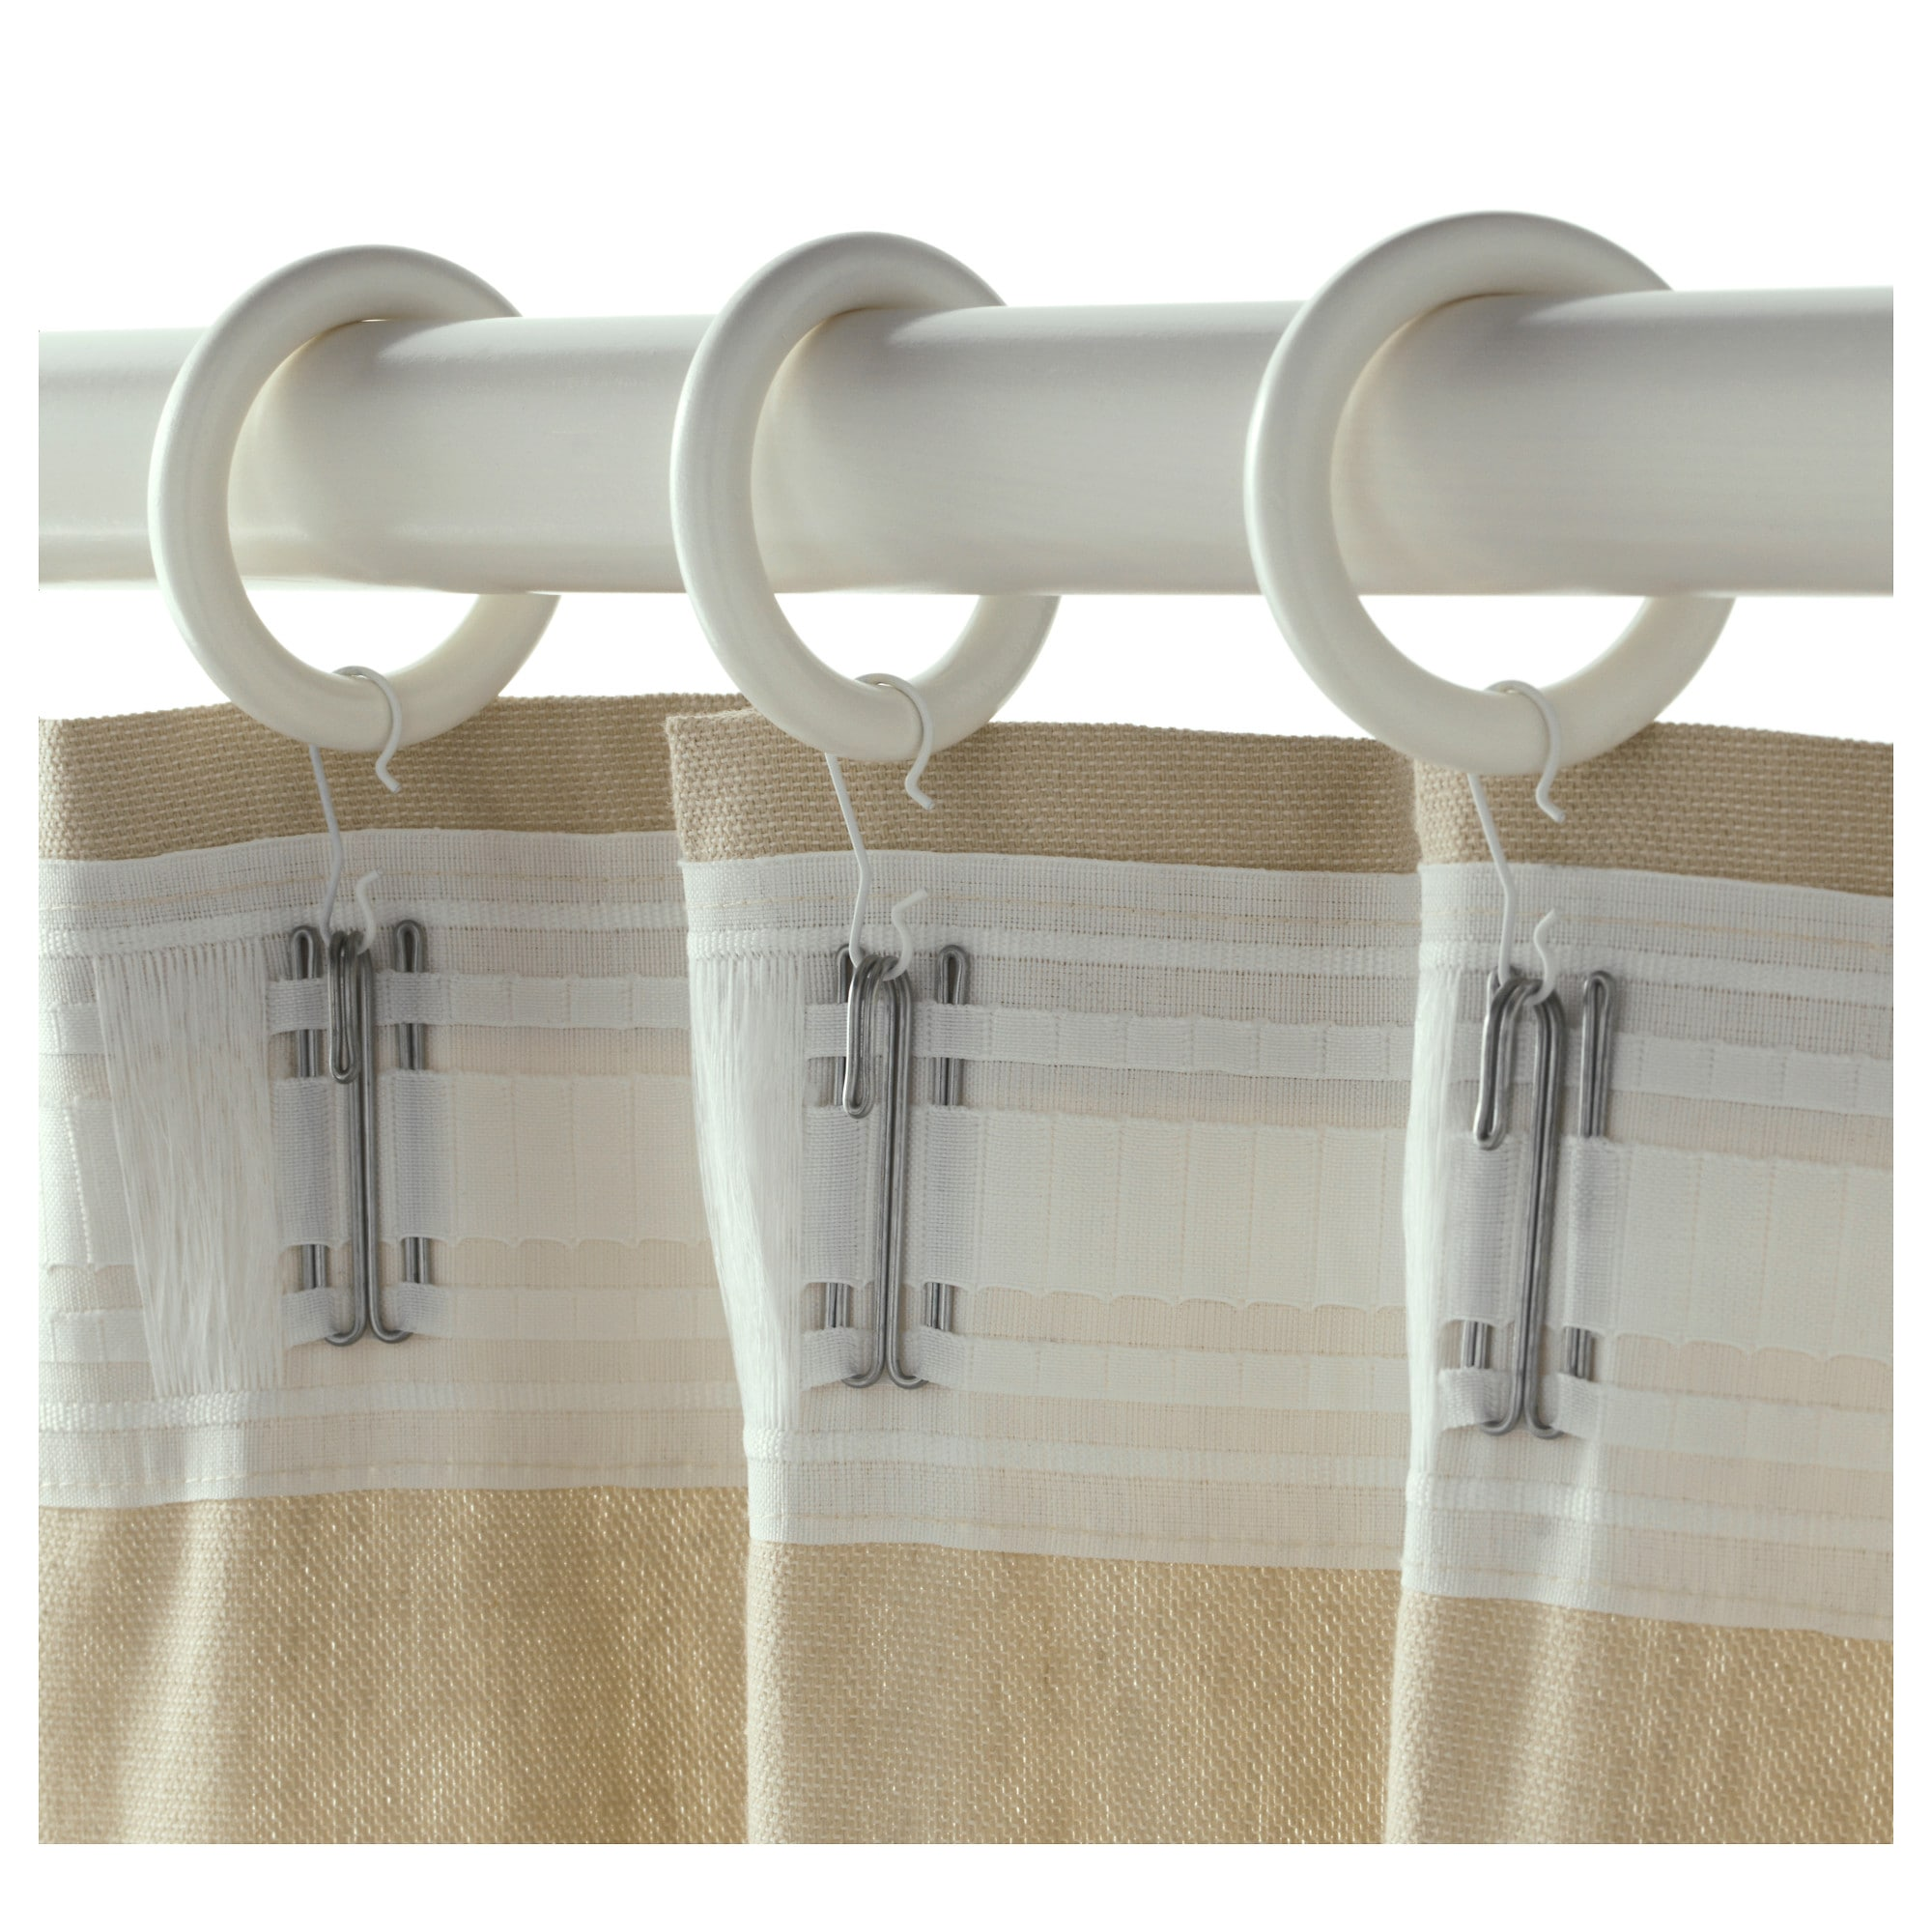 Ikea curtains kvartal - Portion Curtain Ring With Clip And Hook White Stained Diameter 1 7 8